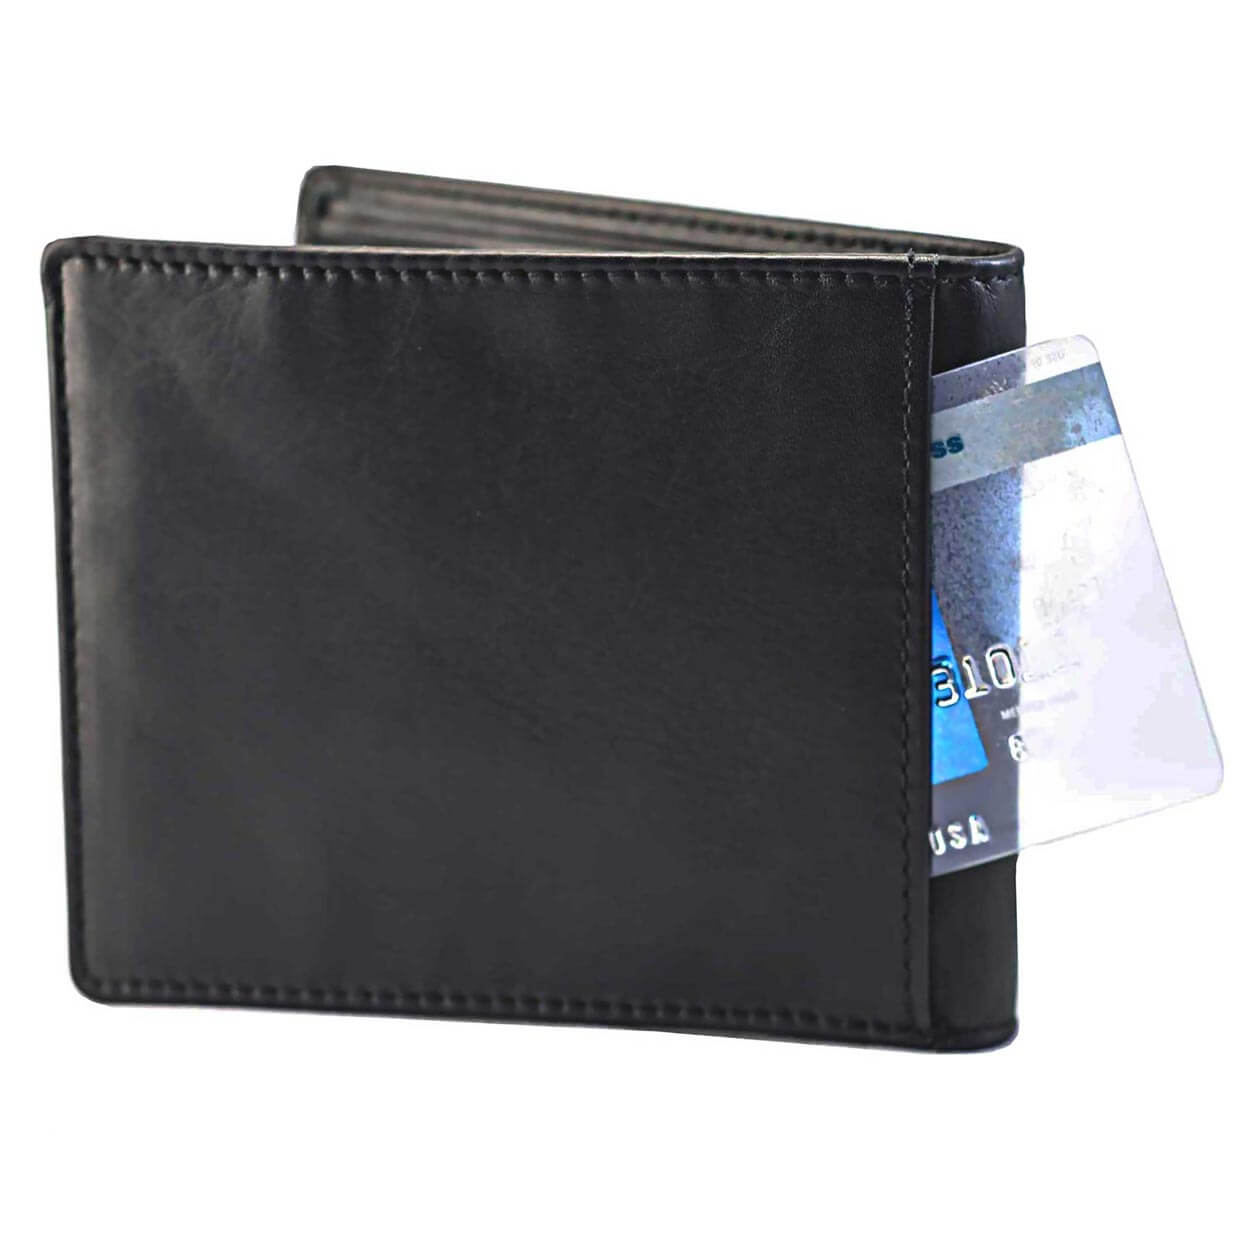 Wallet by DiLoro Italy Men's Wallets RFID Blocking Genuine Full Grain Leather with Coin Compartment, Black 2401-BK - Back Slip Pocket